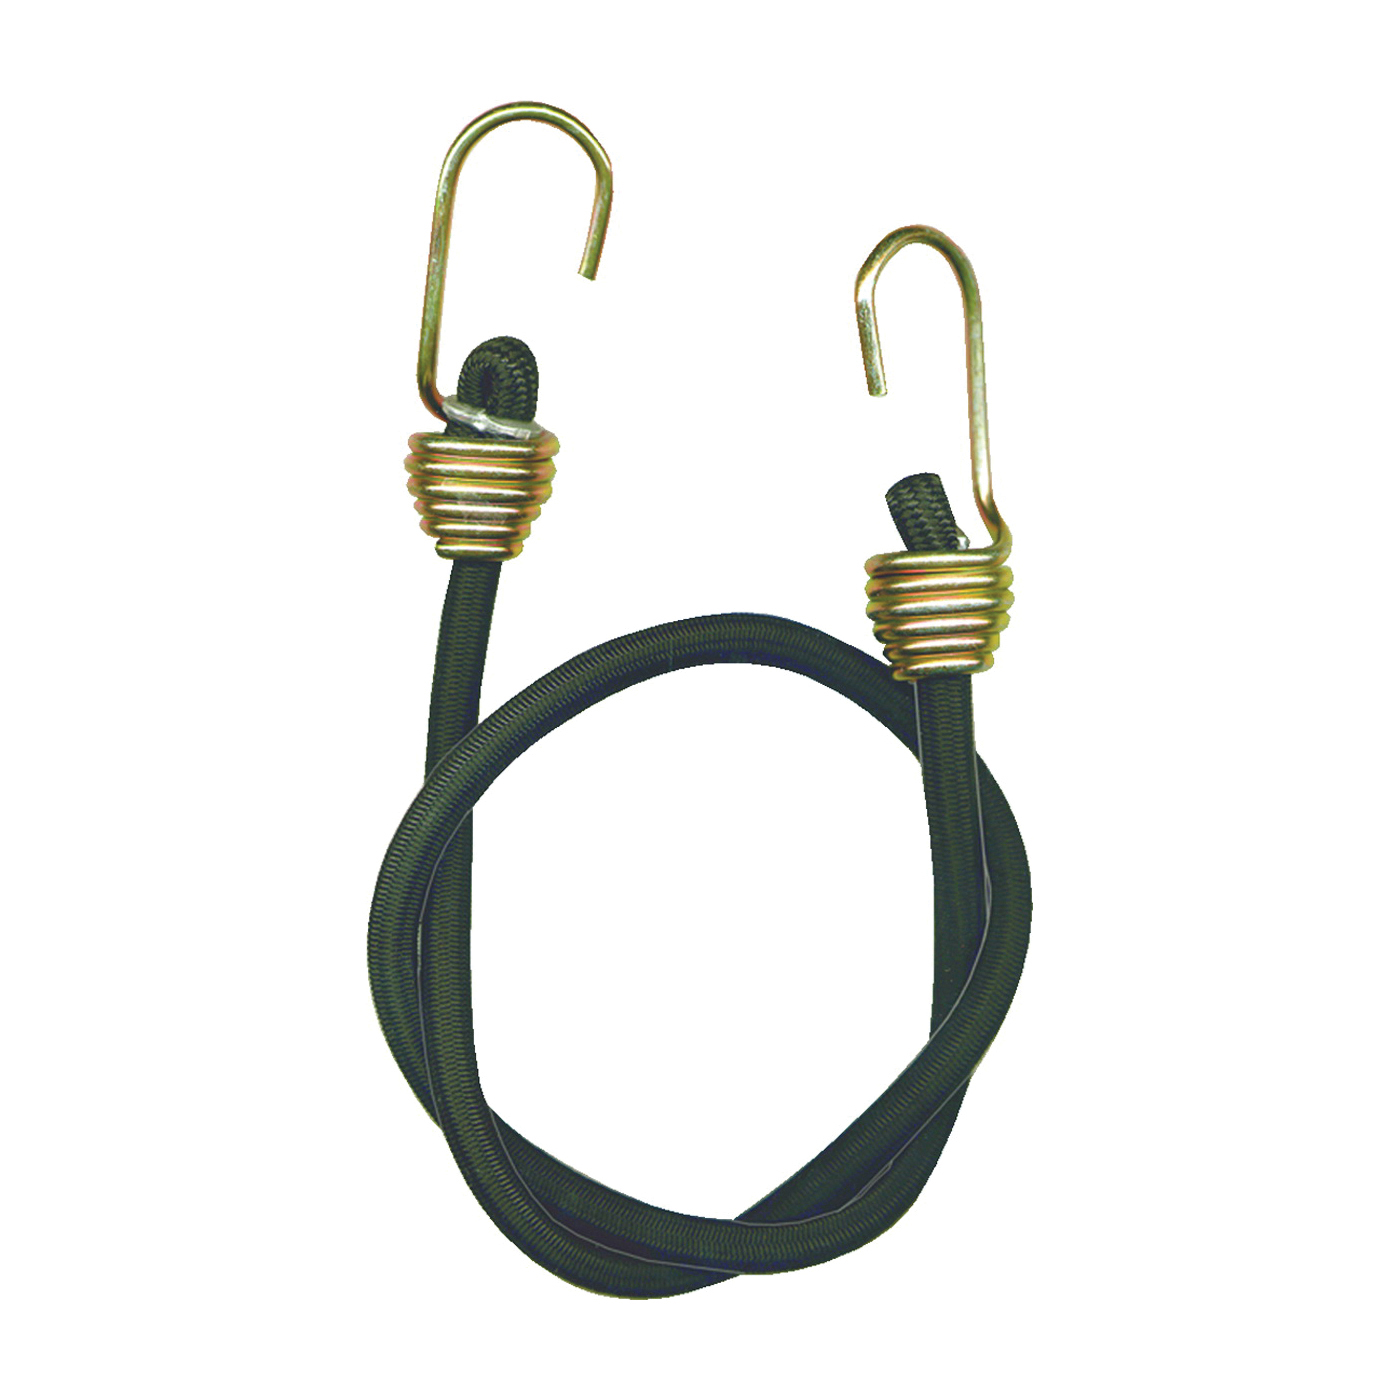 Picture of KEEPER 06180 Bungee Cord, 13/32 in Dia, 24 in L, Rubber, Black, Hook End